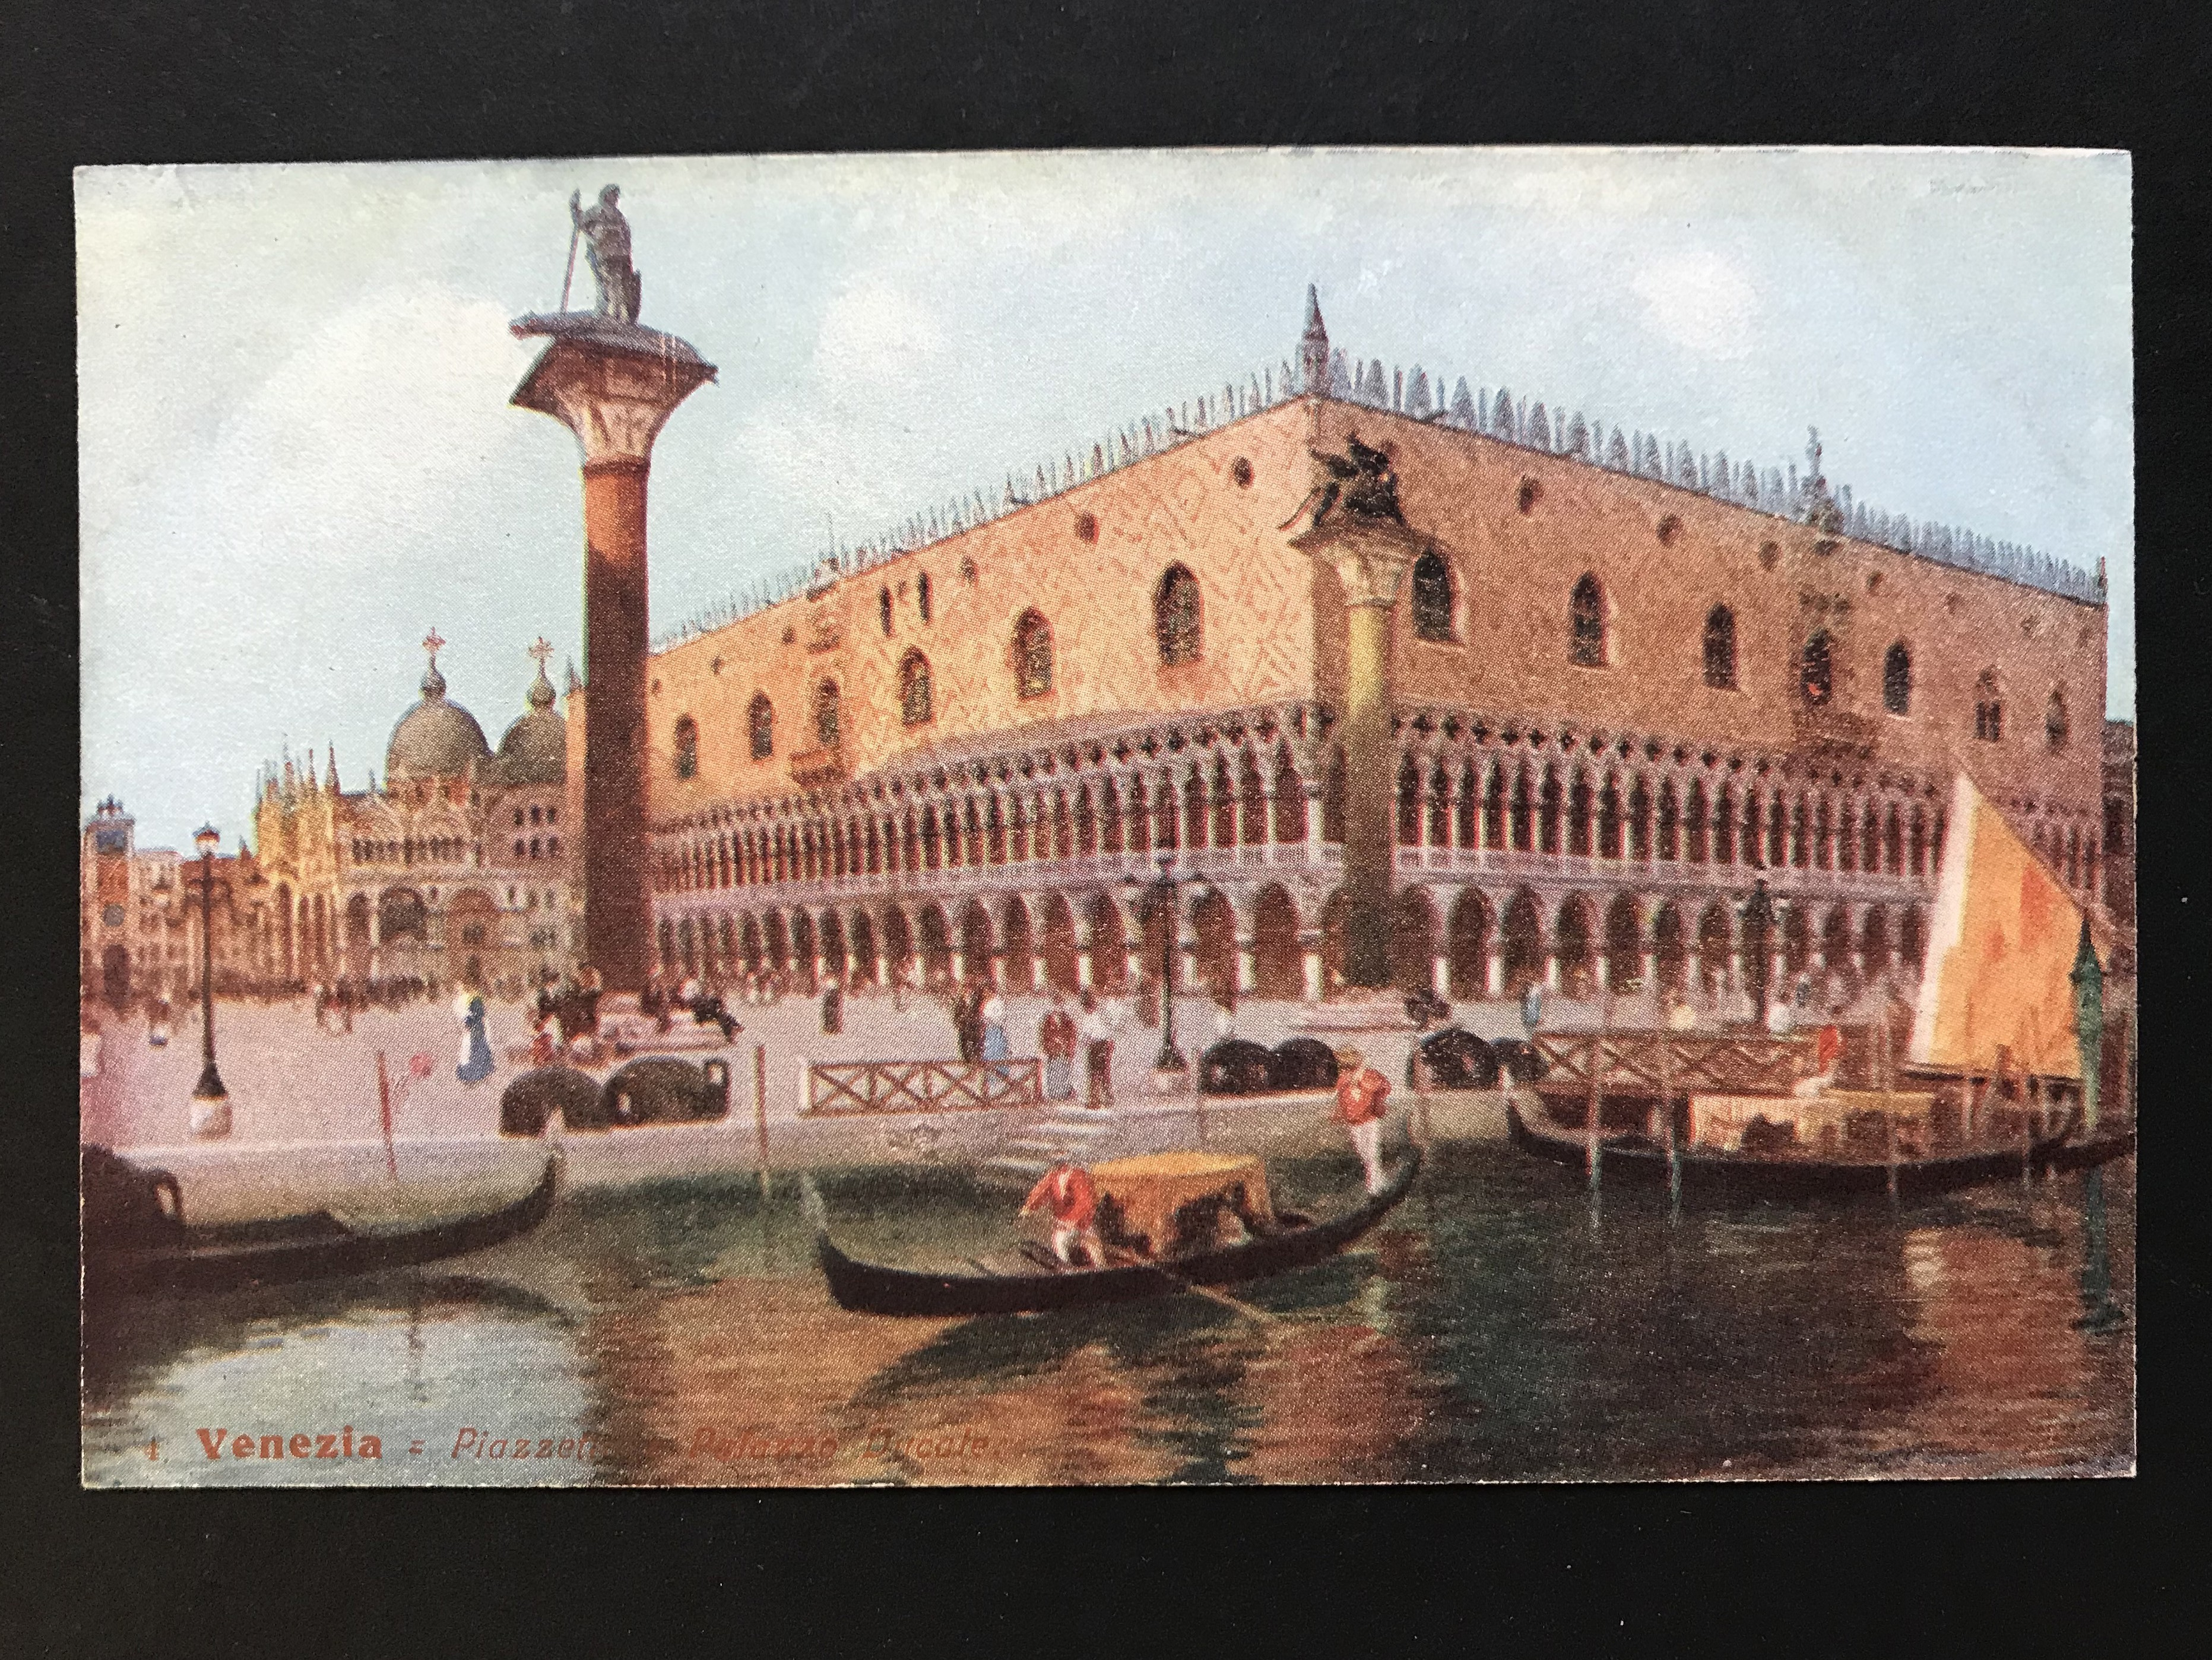 SELECTION OF VENICE RELATED POSTCARDS - Image 9 of 53